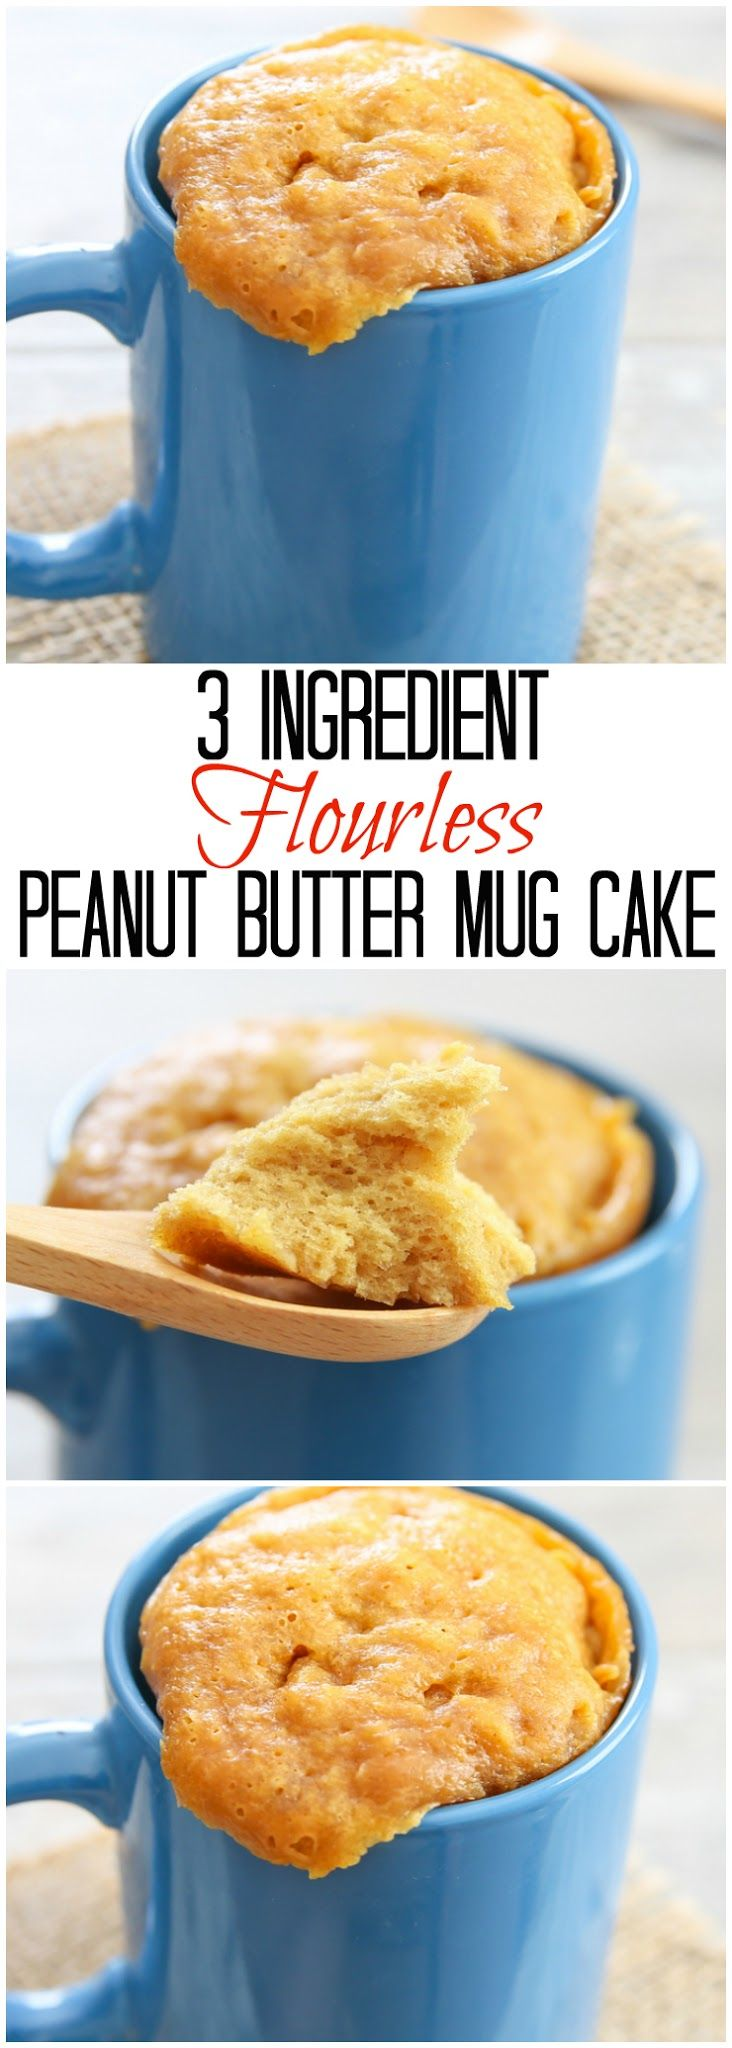 3 Ingredient Flourless Peanut Butter Mug Cake | Kirbie's Cravings | A San Diego food & travel blog